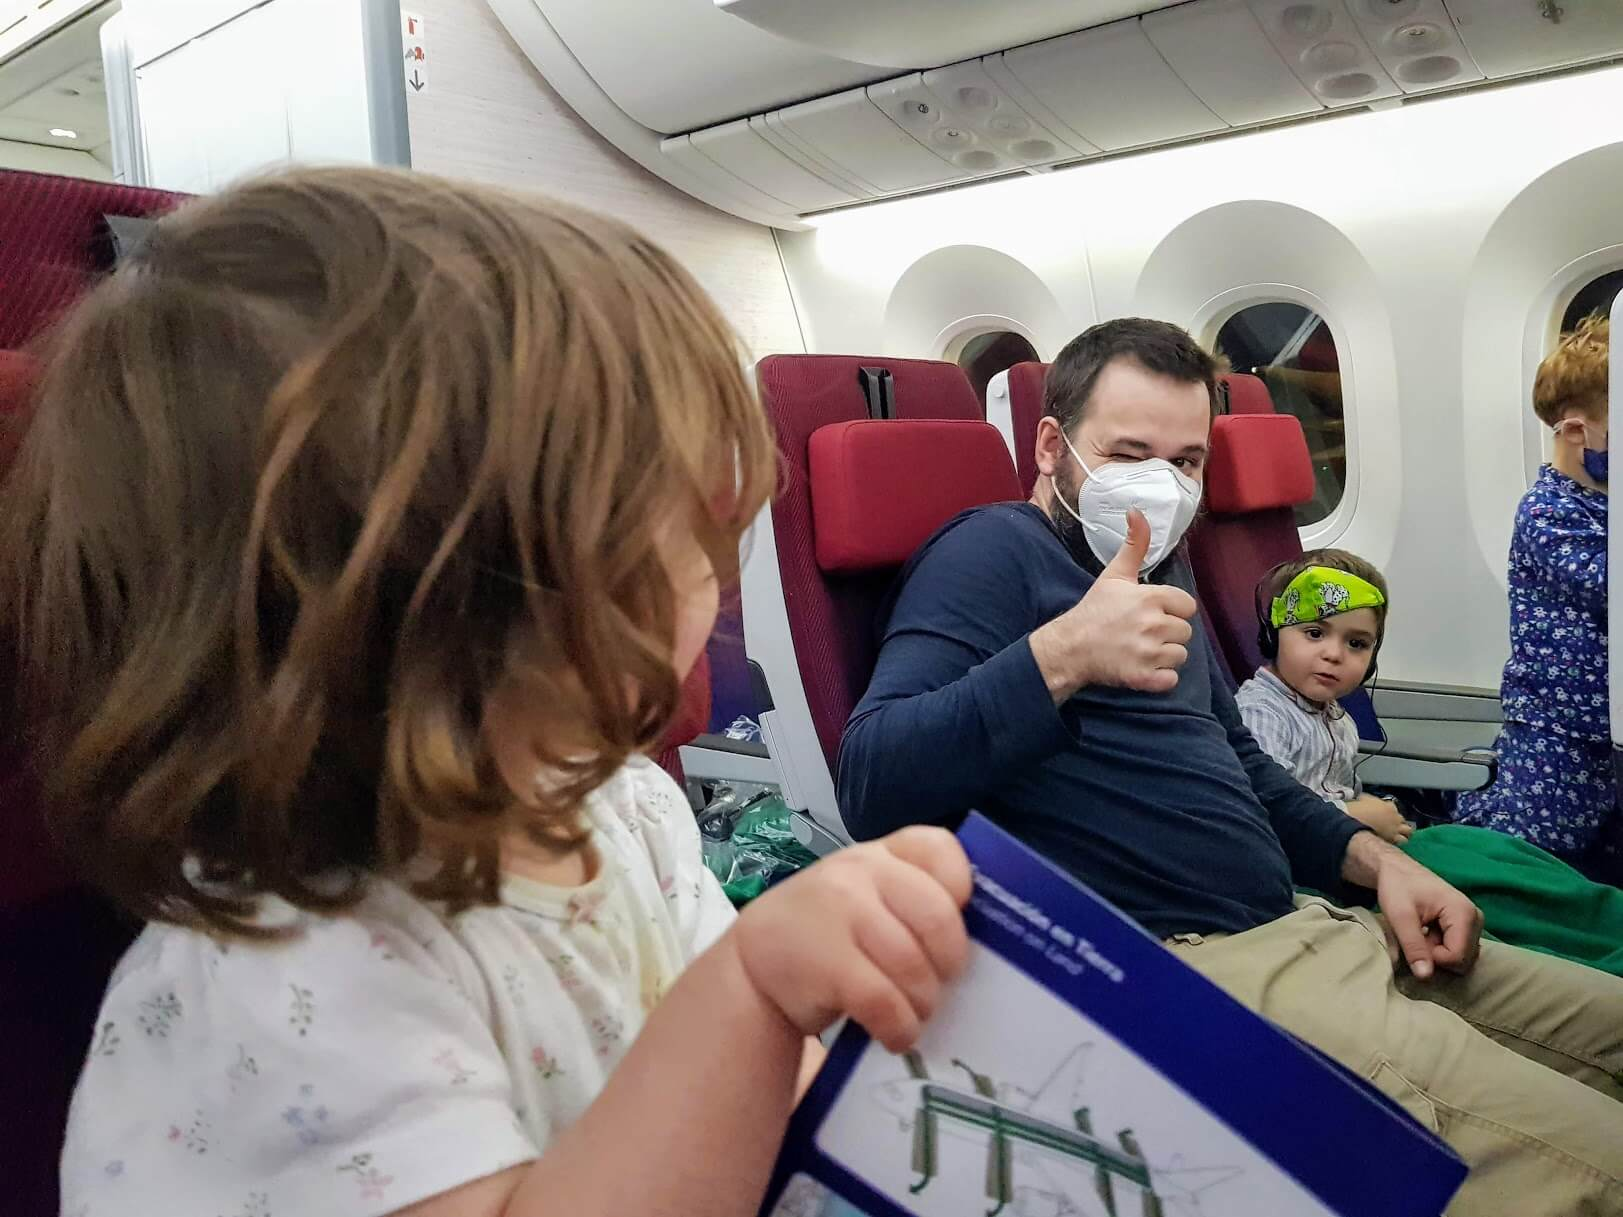 Flying during COVID with a toddler - Santiago to Miami